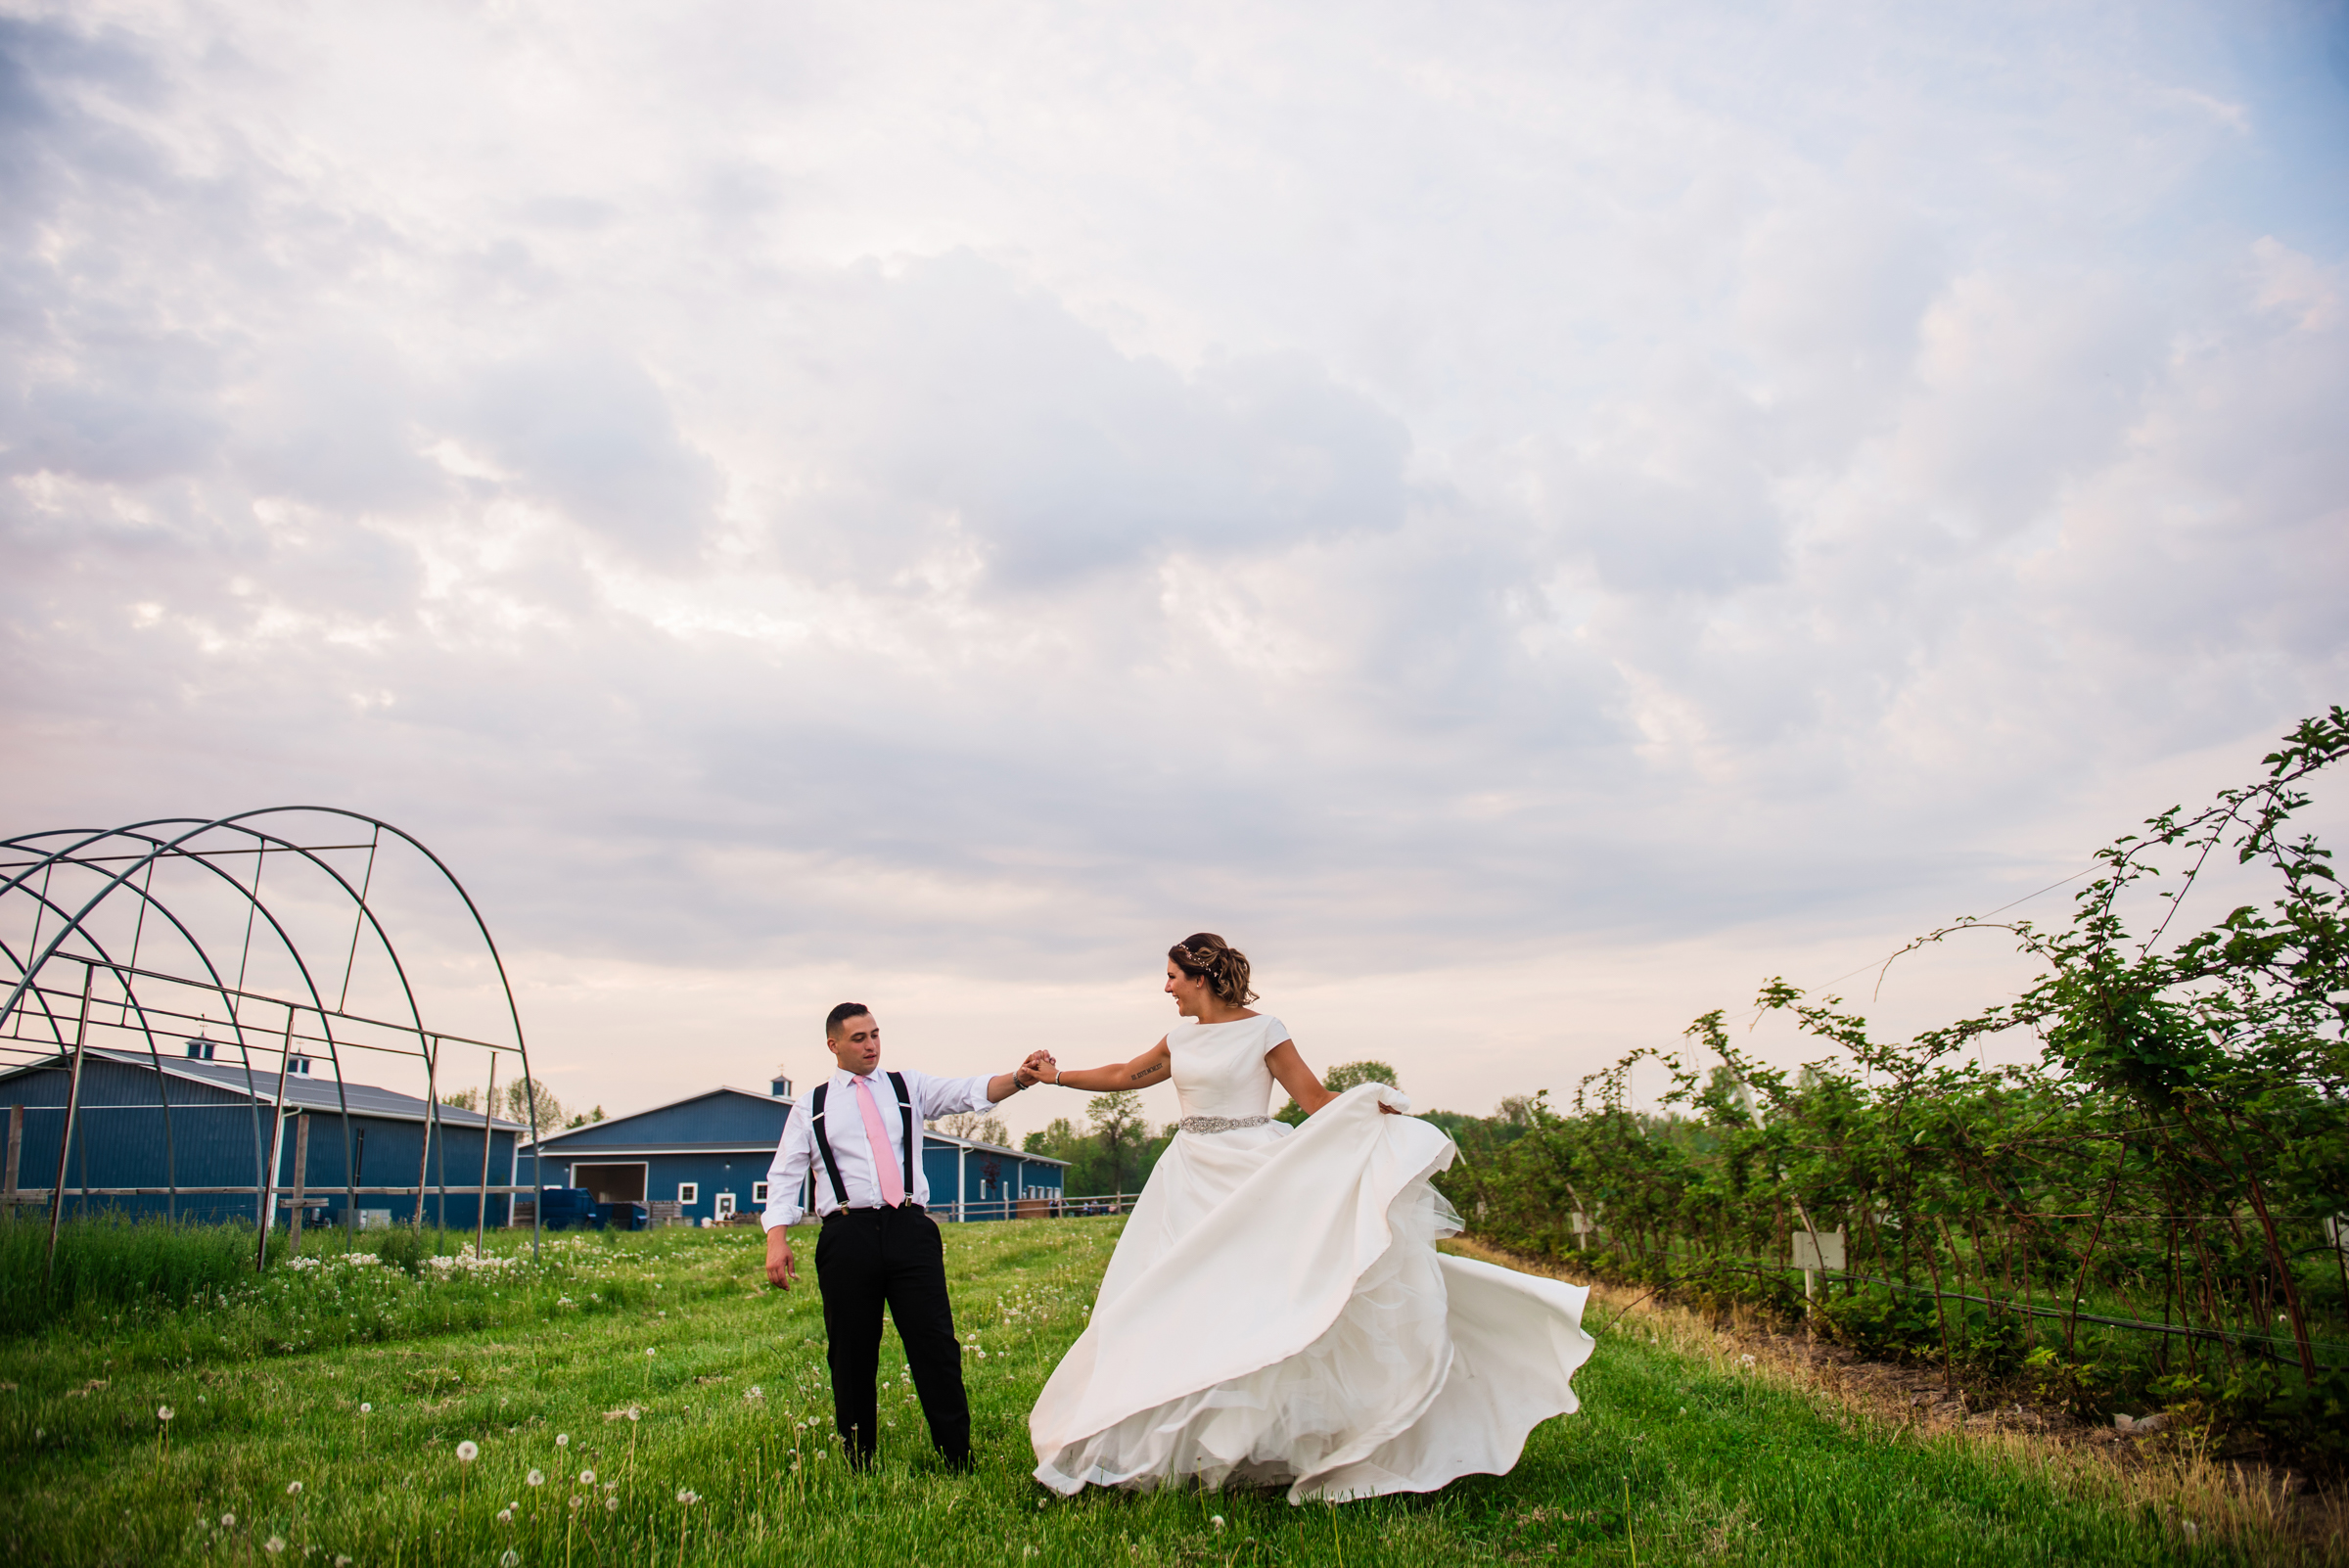 JILL_STUDIO_Wedding_JILL_STUDIO_Rochester_NY_Photographer_3-DSC_8995.jpg